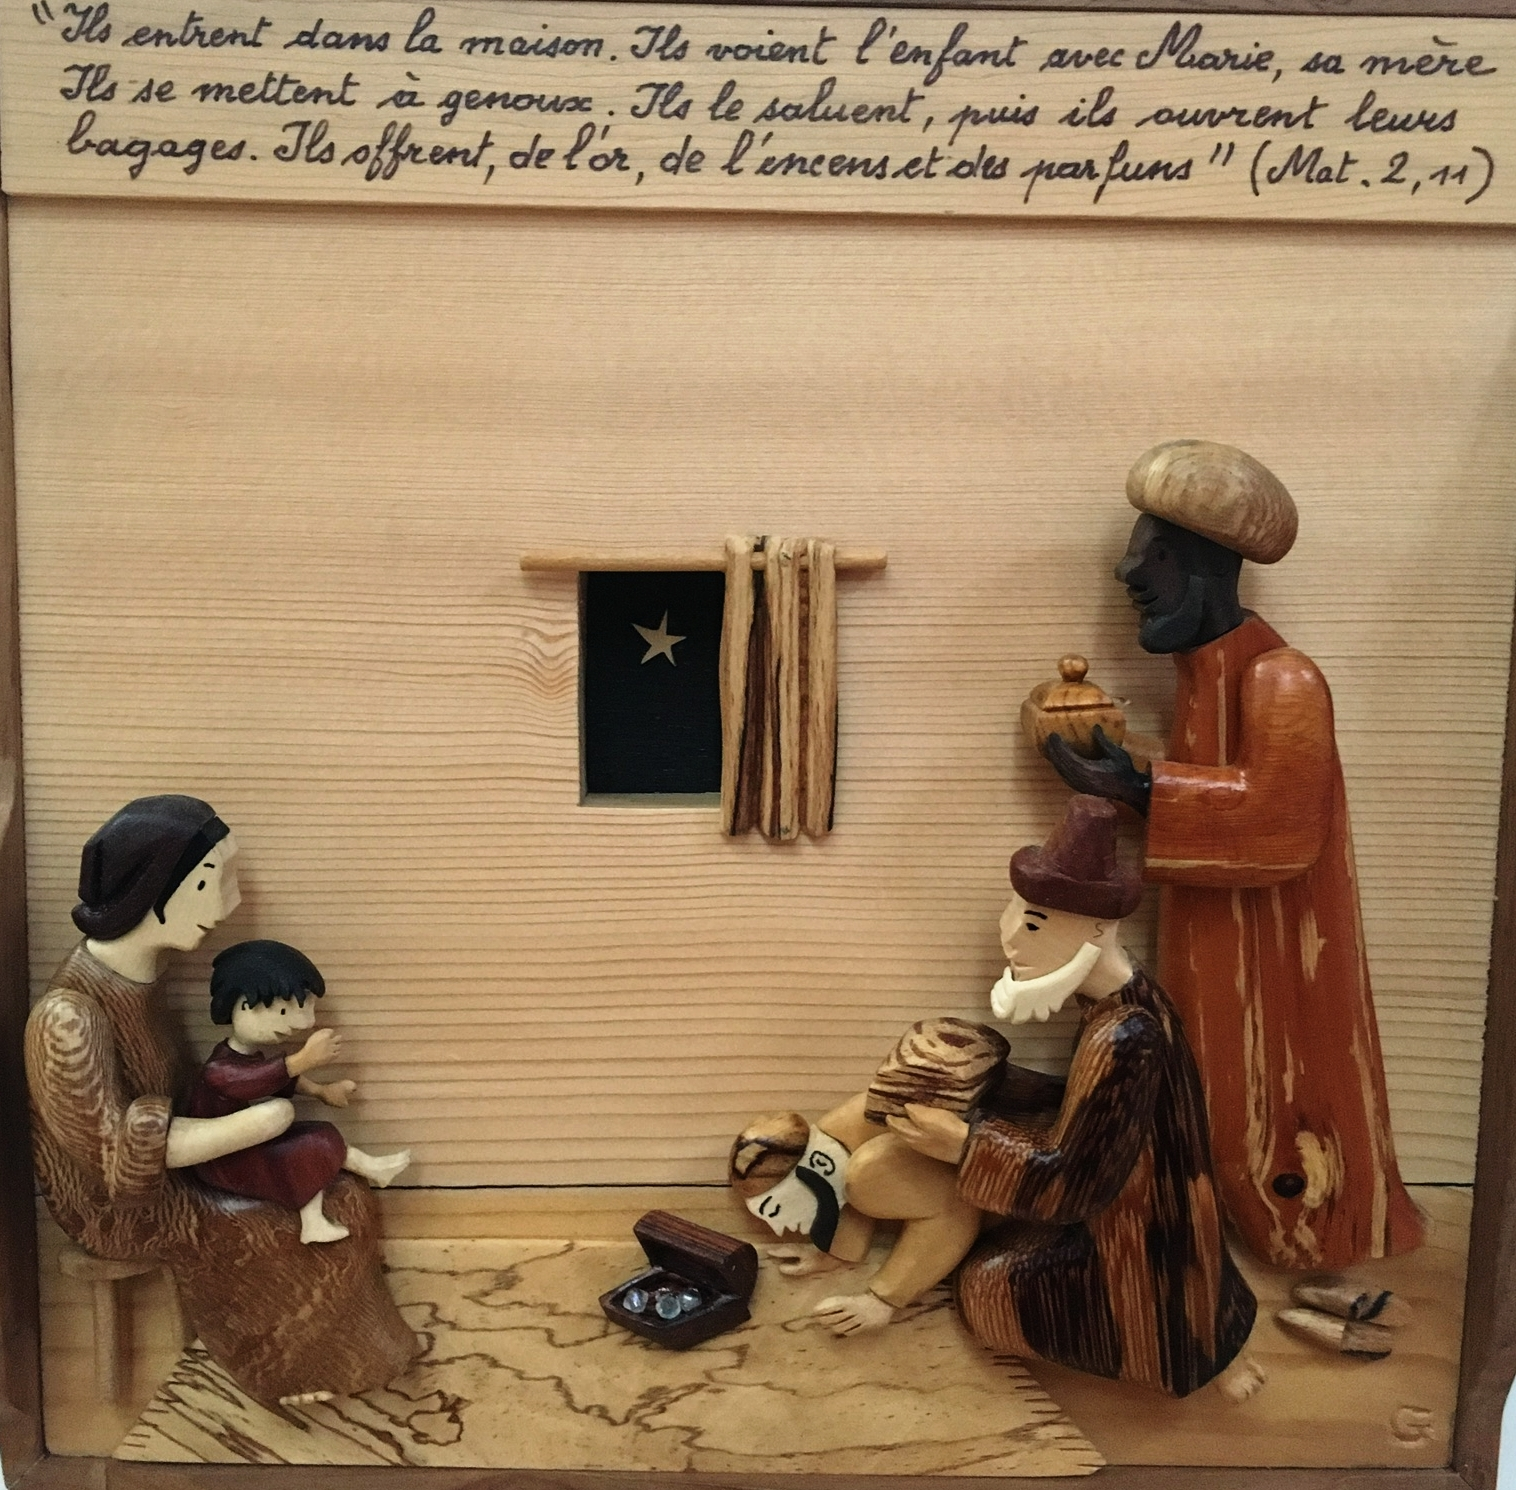 An intricate carved wood exhibit - turns it was based on frames from a French comic book about the life and death of Jesus!